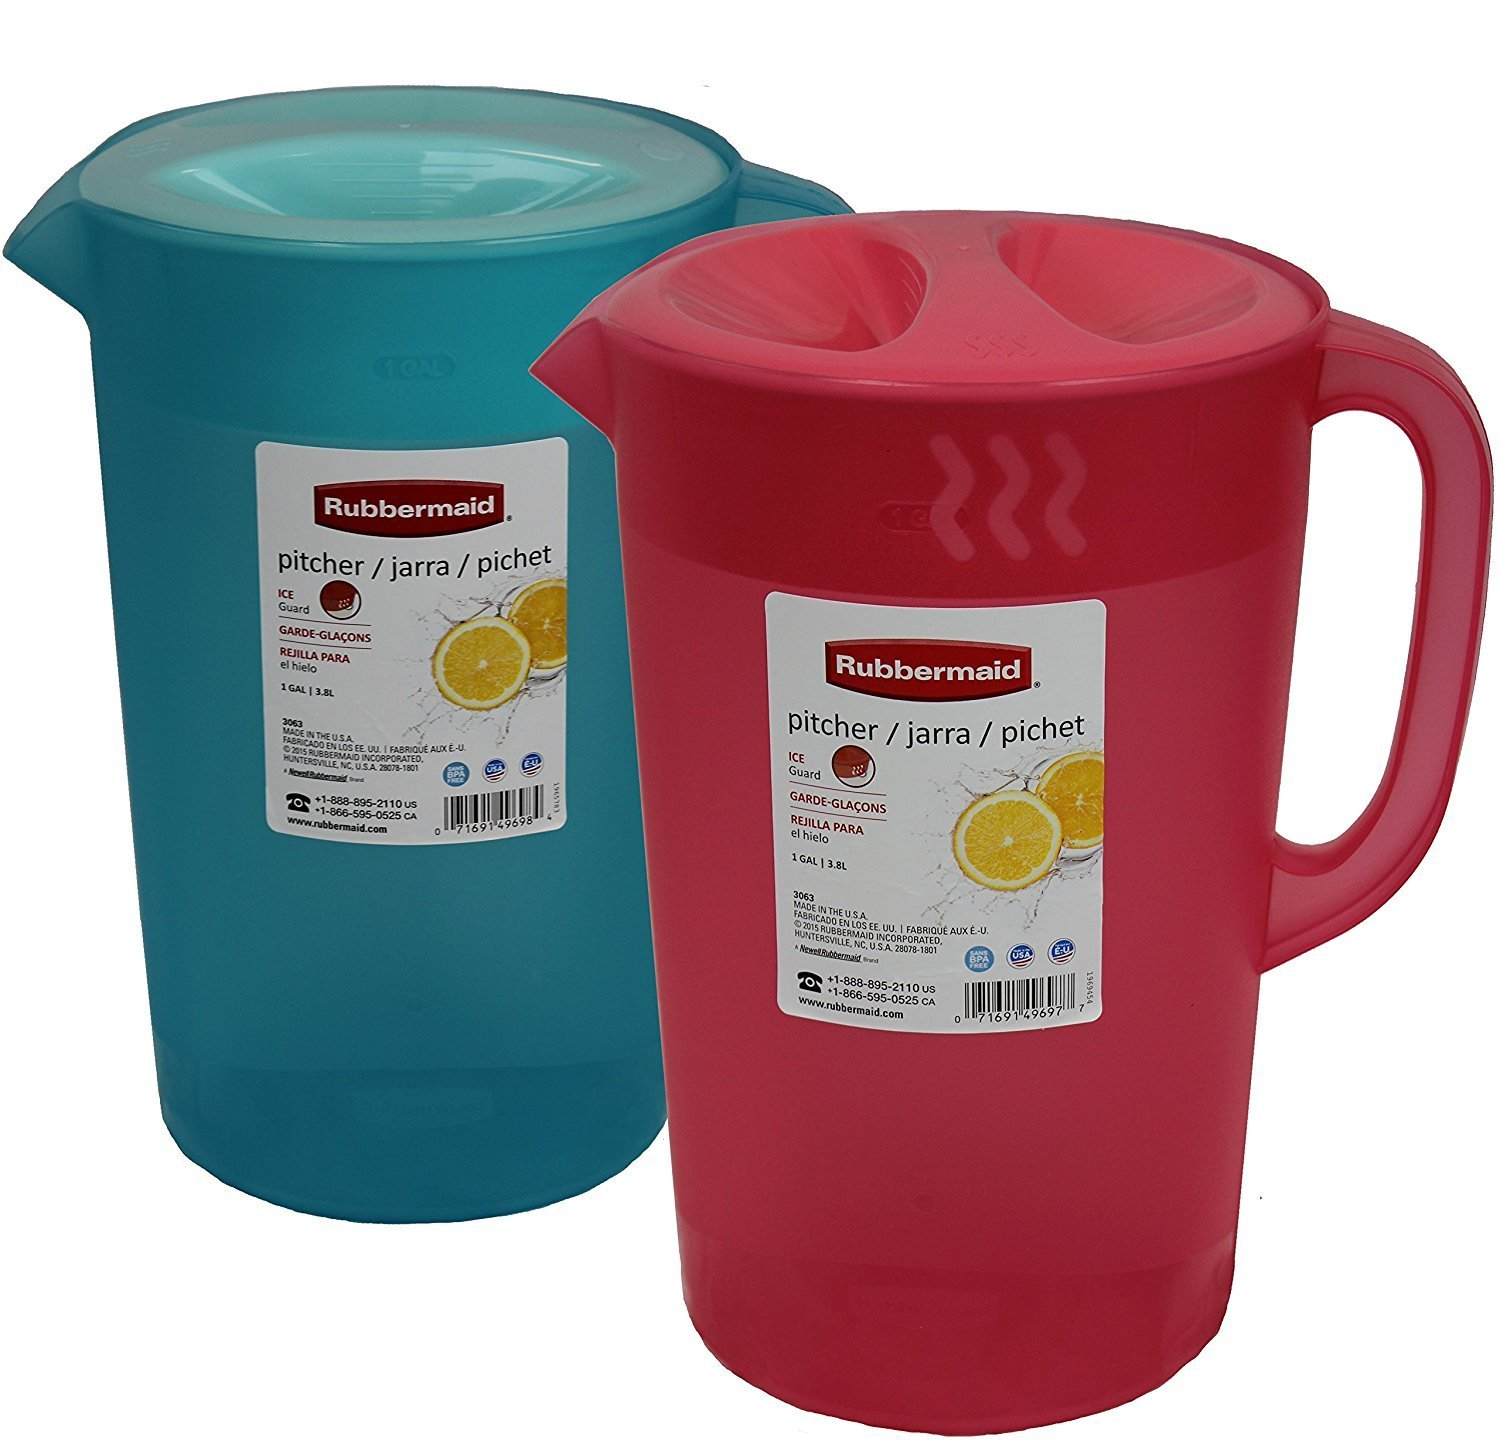 Rubbermaid One Gallon Pitchers, Red and White and blue B073PG11J7